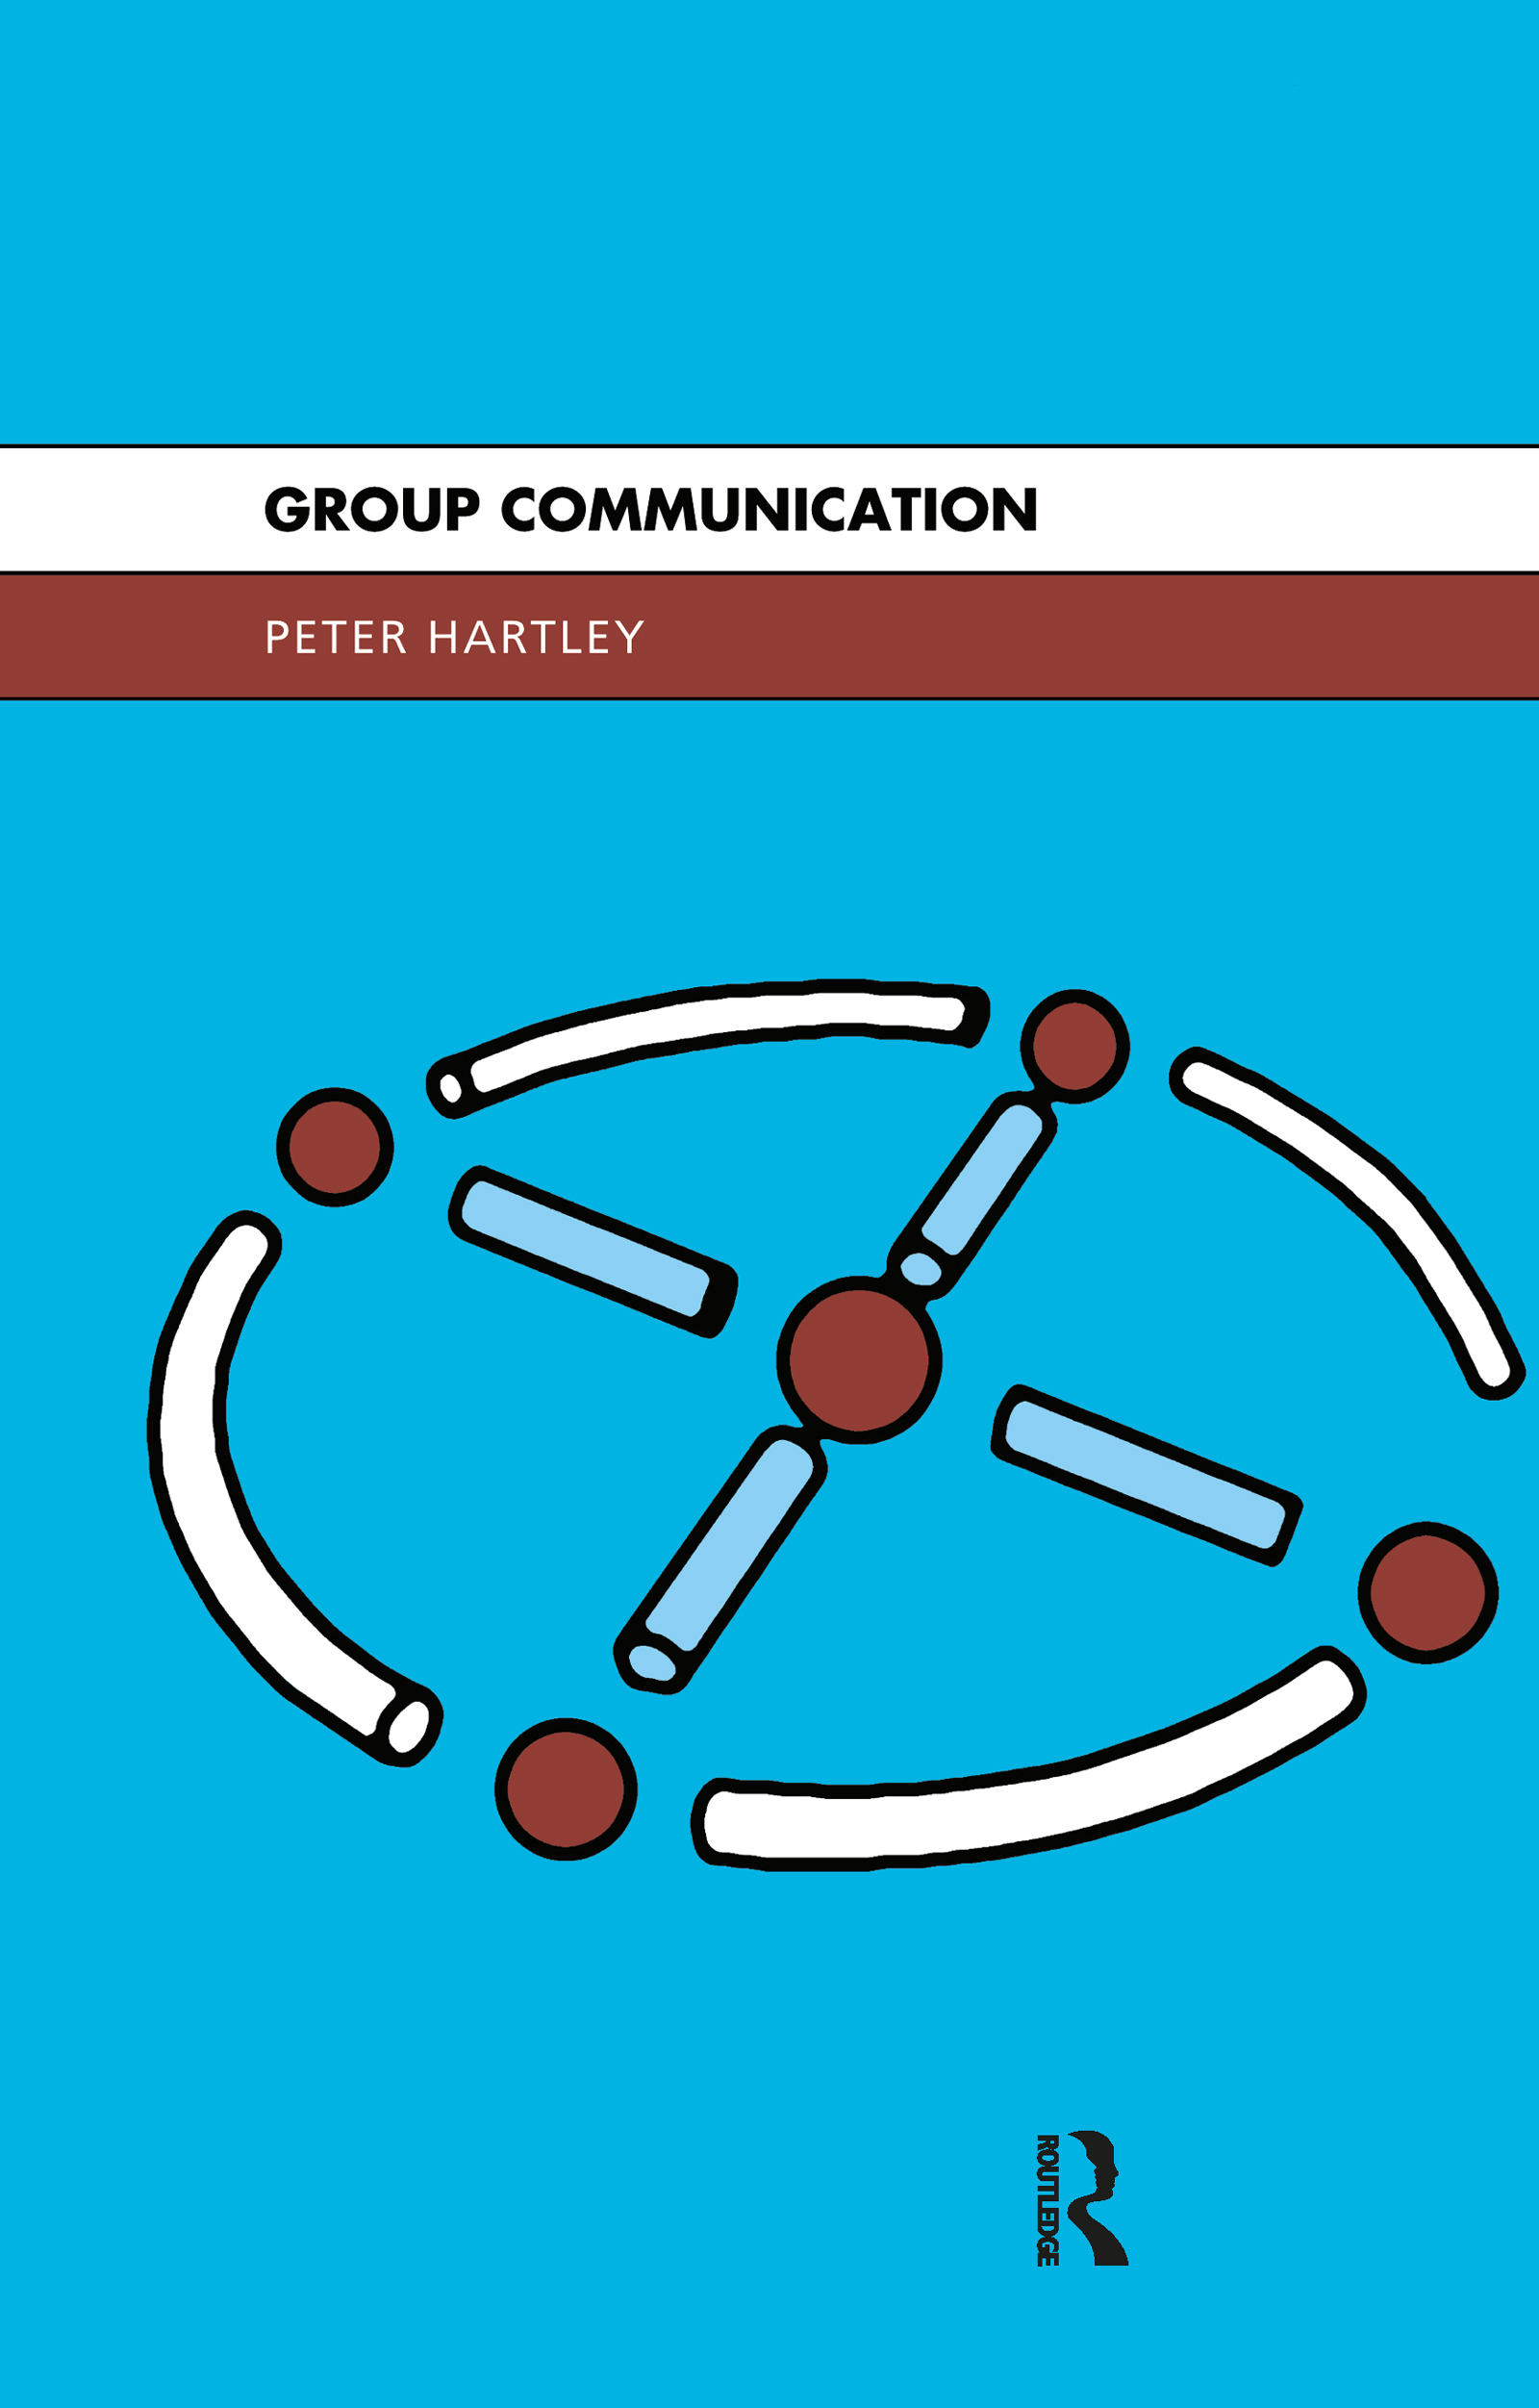 Download Ebook Group Communication by Peter Hartley Pdf